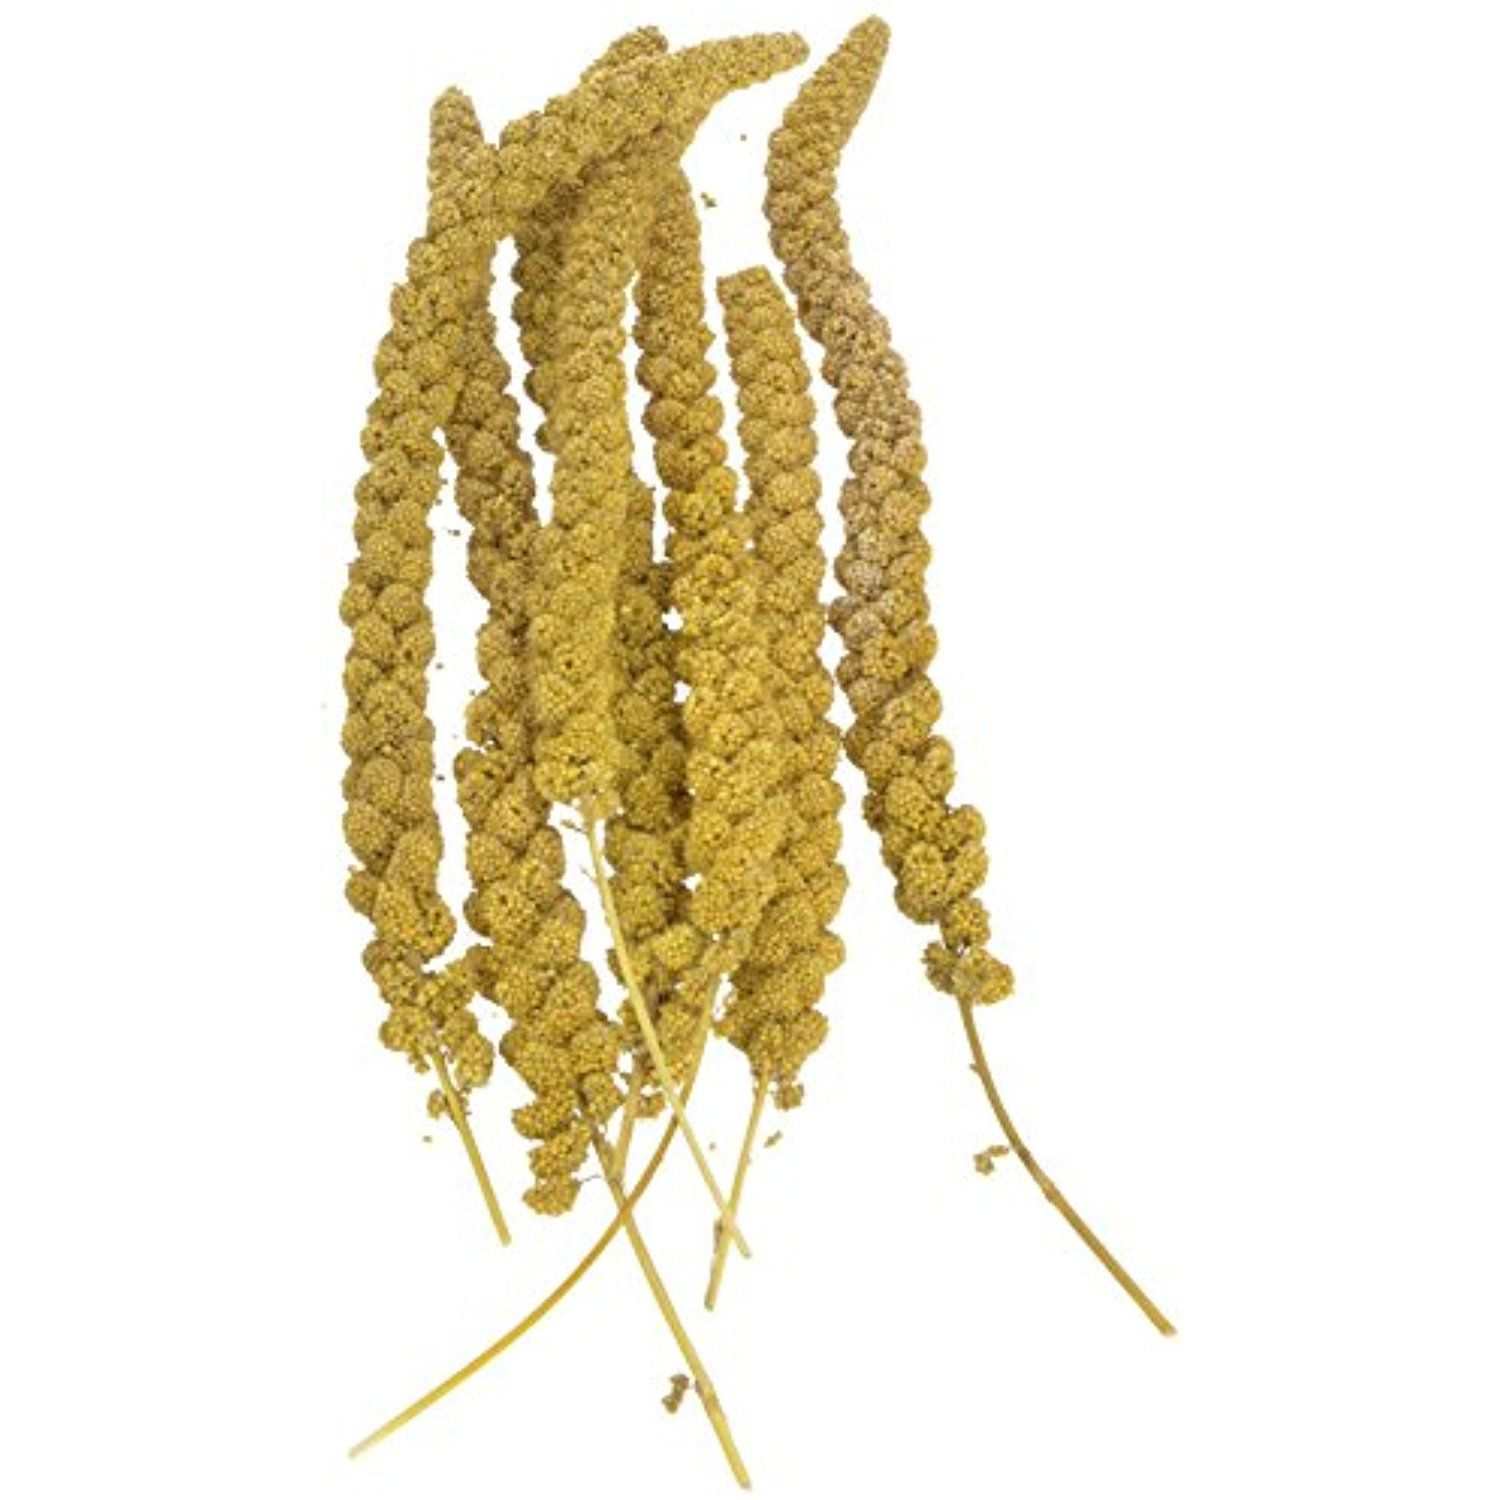 Sun Seed Company Bss10911 Small Bird Millet Spray Treats 5 Pound For More Information Visit Image Link This Is An Affili Seed Company Small Birds Seeds